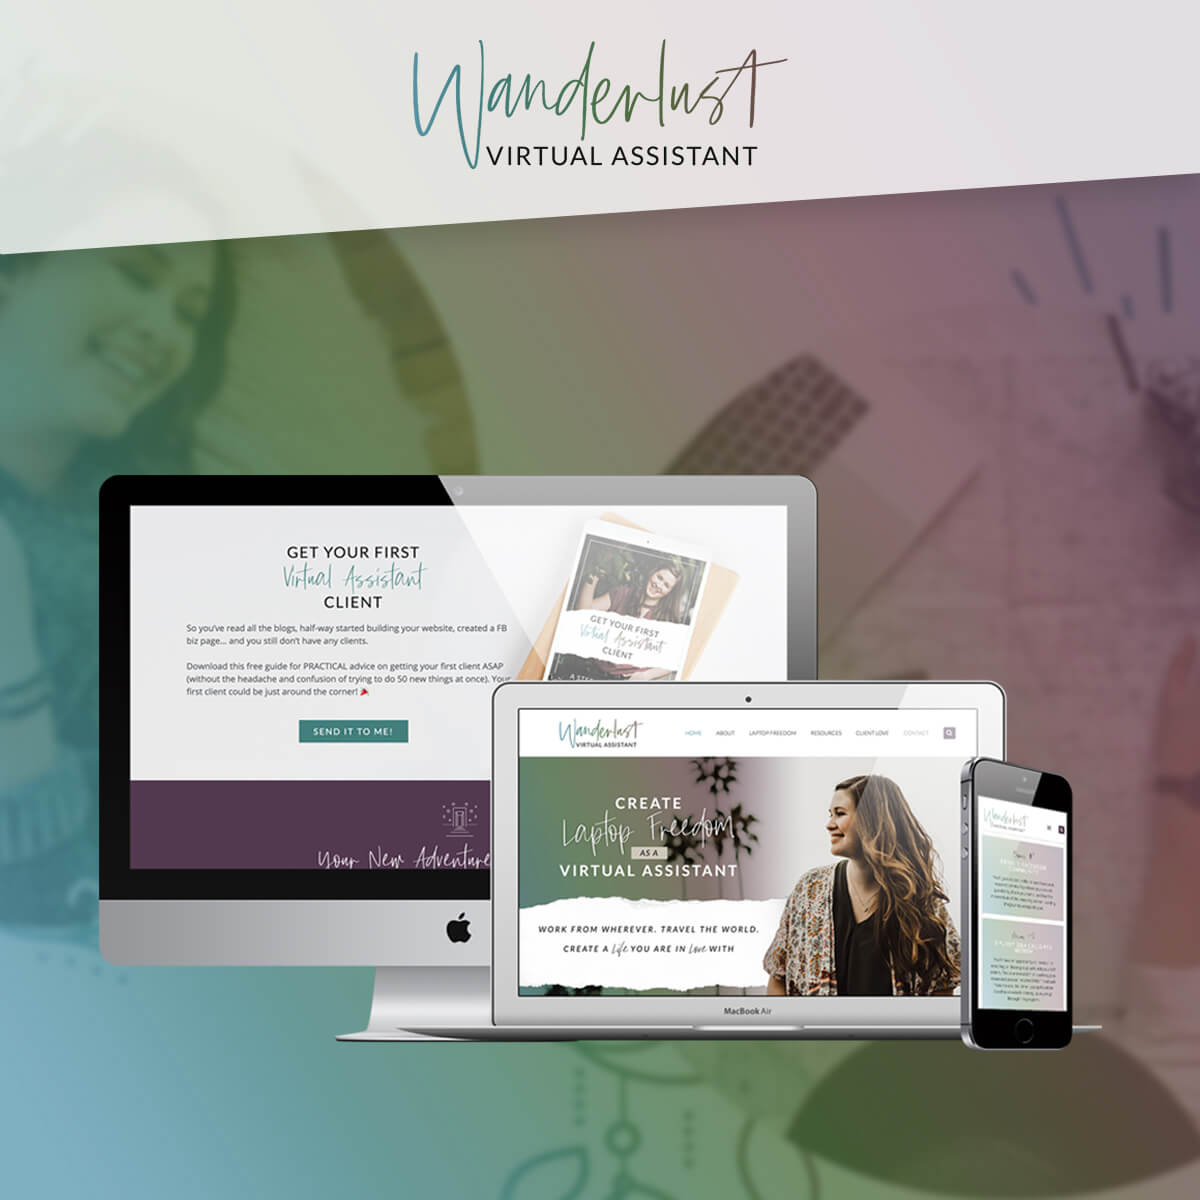 wanderlust-va-screen-mockup-IG-feed